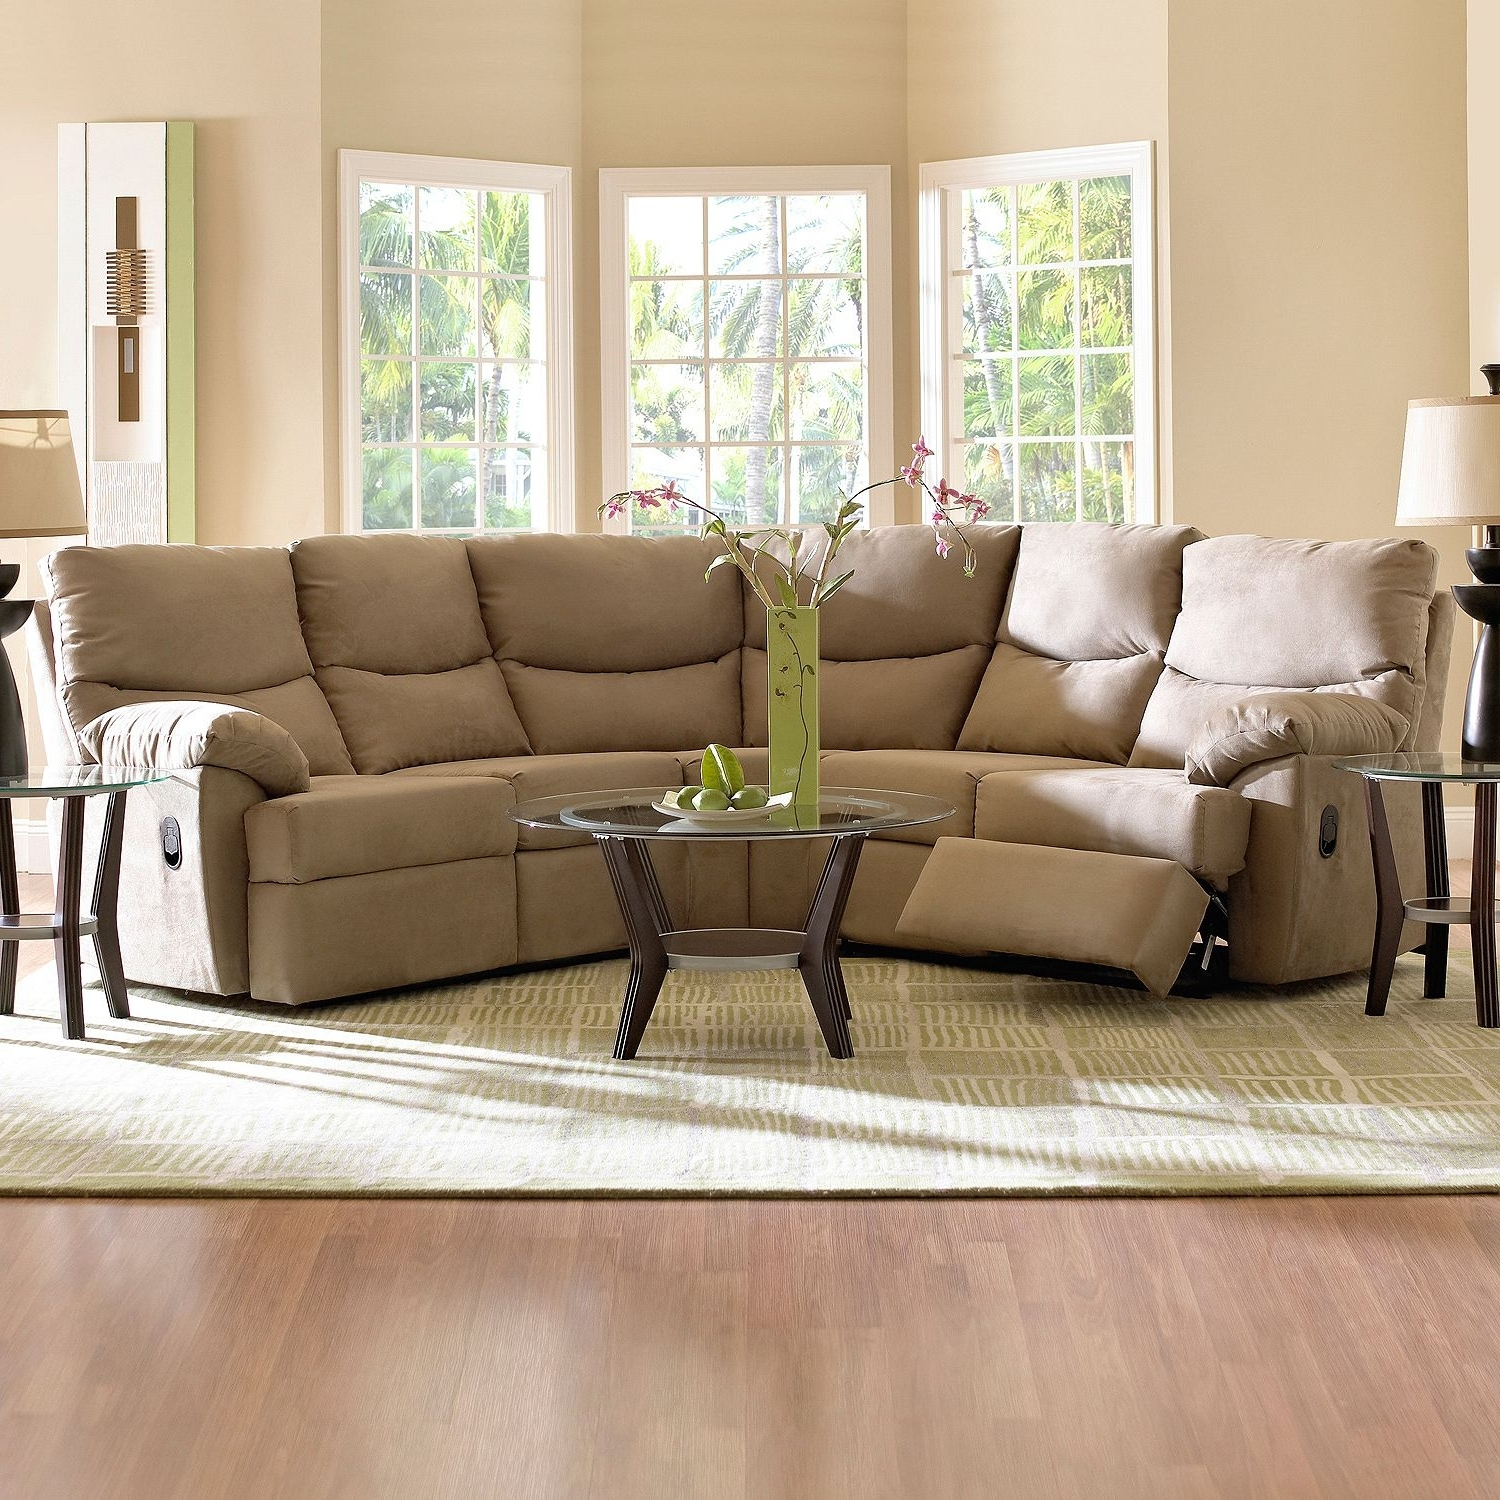 Sams Club Sectional Sofas Throughout Most Current Brantley Sectional – 2 Pc (View 4 of 15)